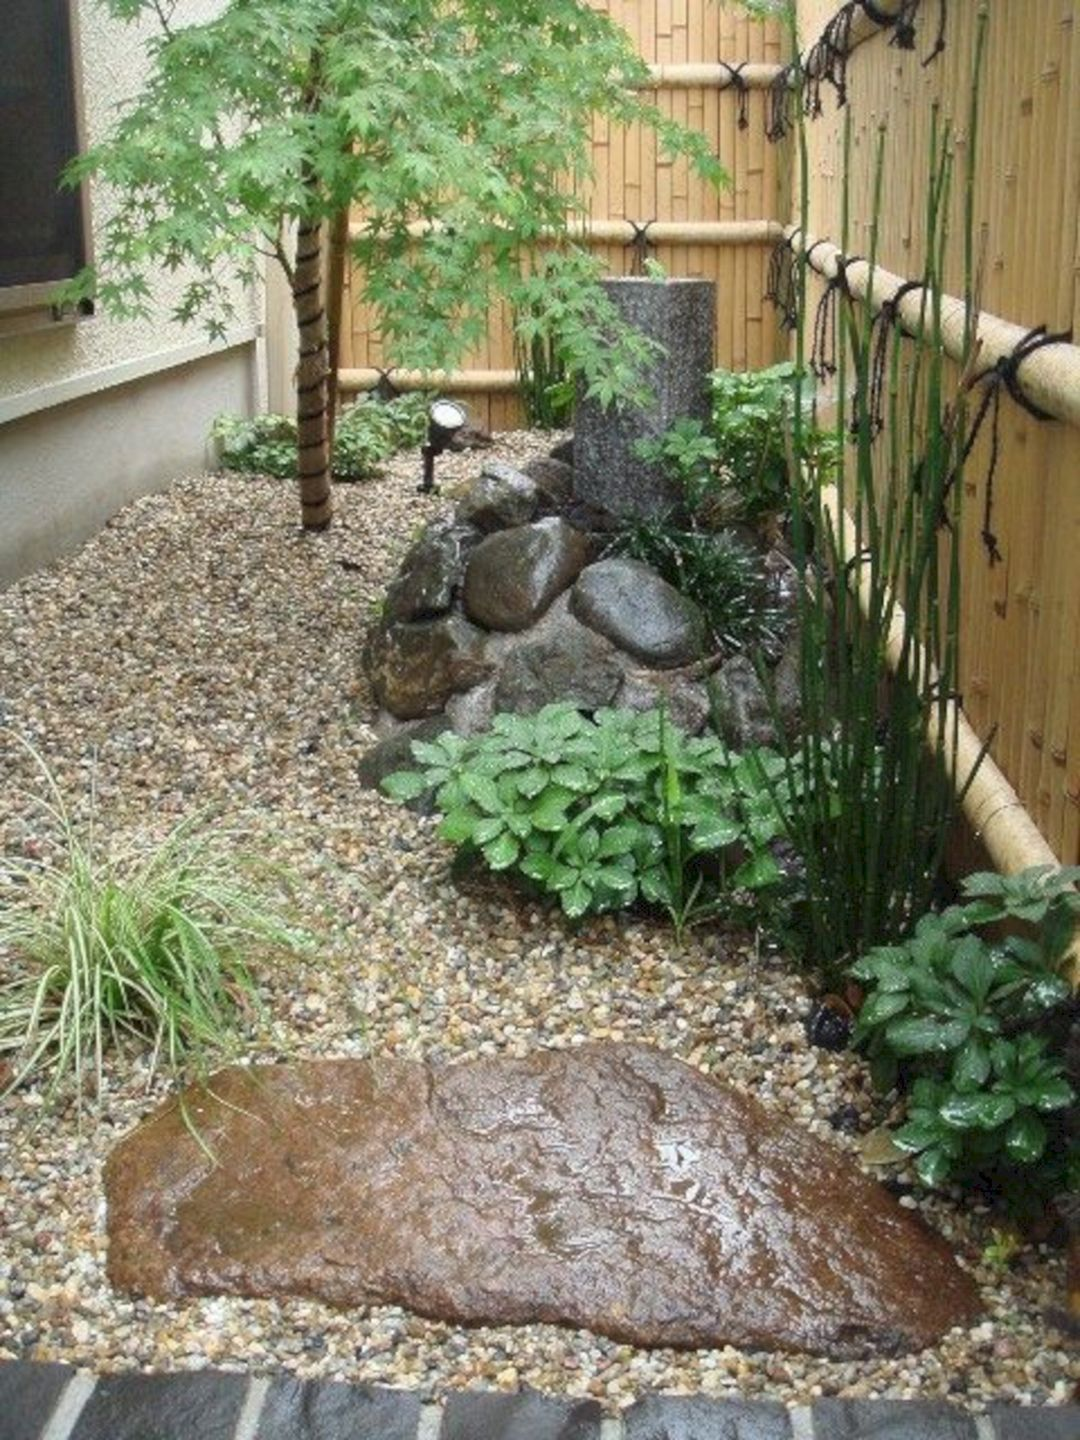 Awesome Amazing 25 Japanese Garden Design Ideas For Beautiful Home Https Hroomy Com Plants Japanese Garden Landscape Zen Garden Design Small Japanese Garden